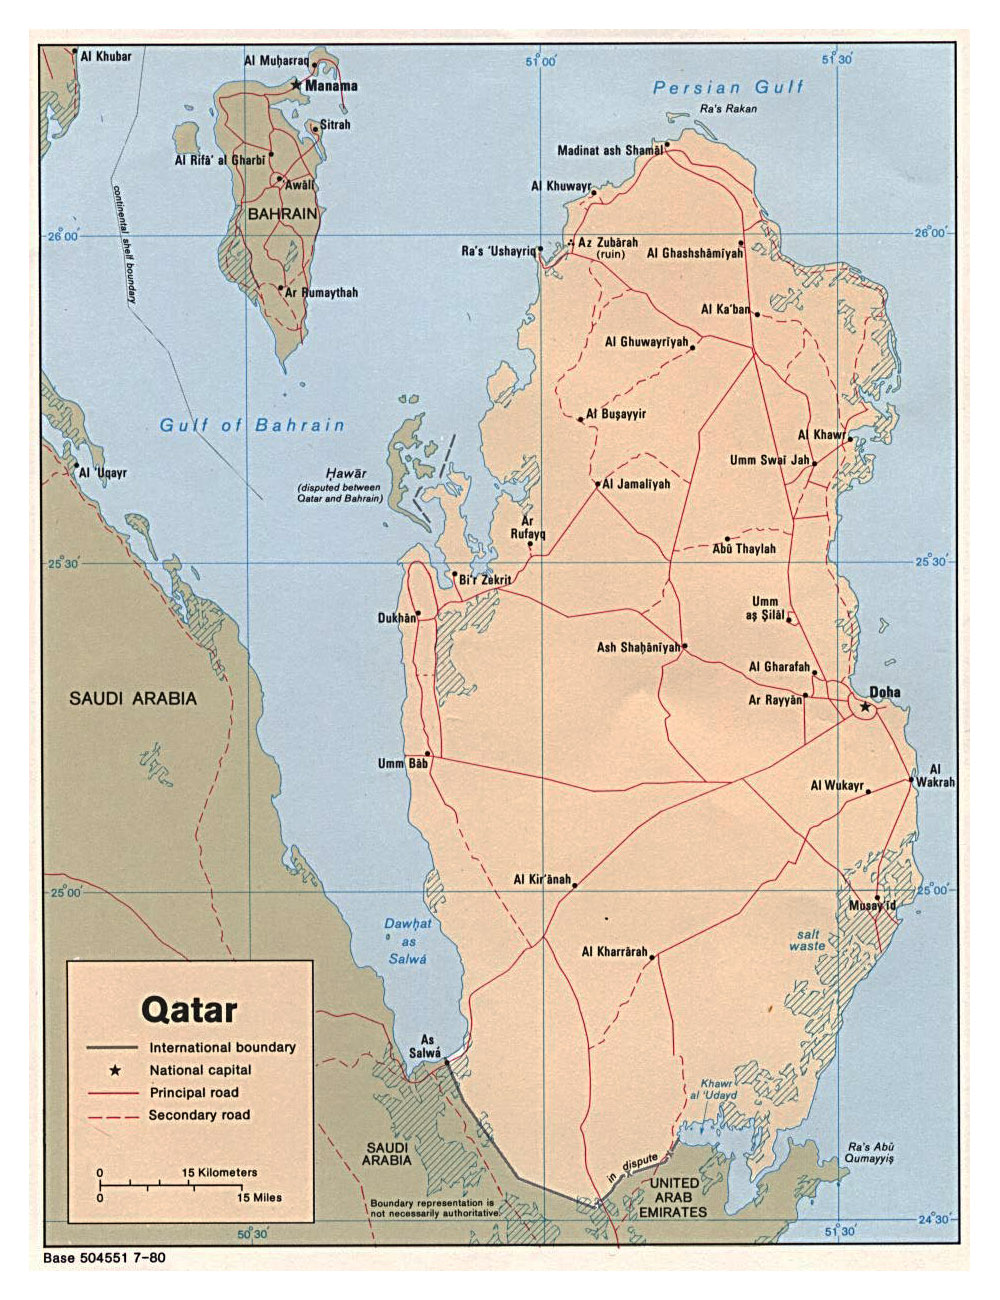 large political map of qatar with roads and cities 1980